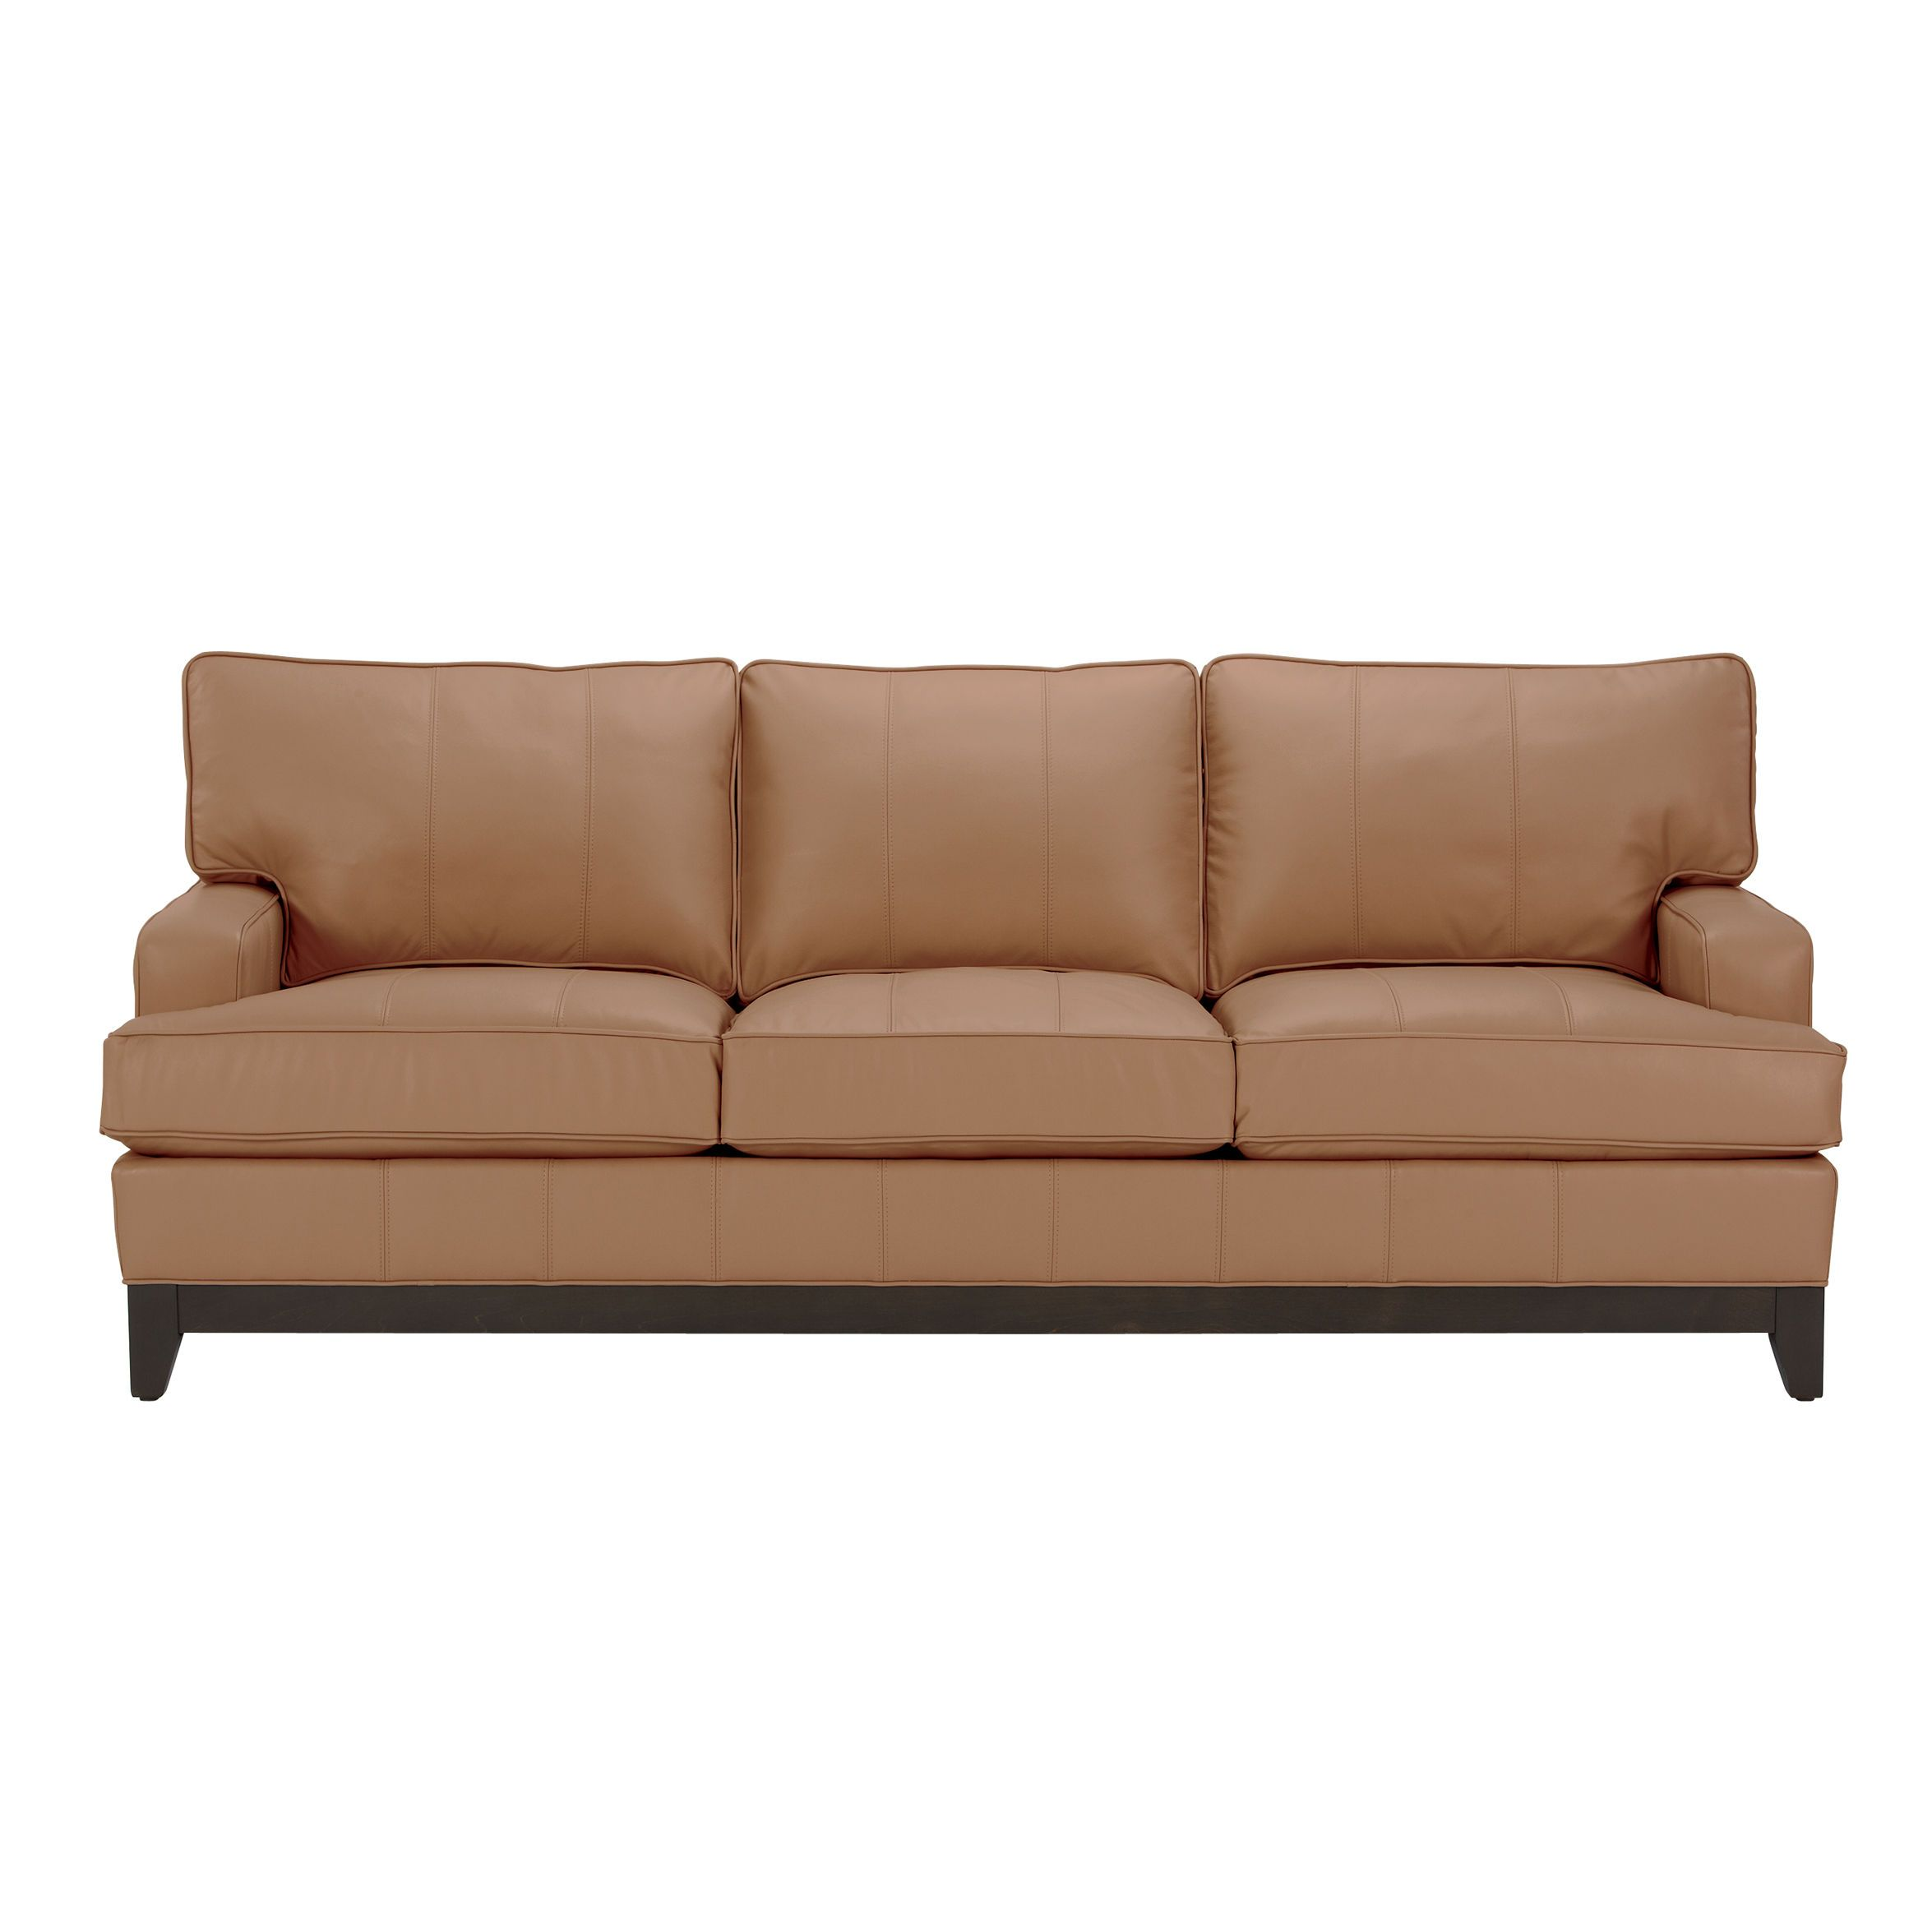 Arcata Three Cushion Leather Sofa Ethan Allen Us